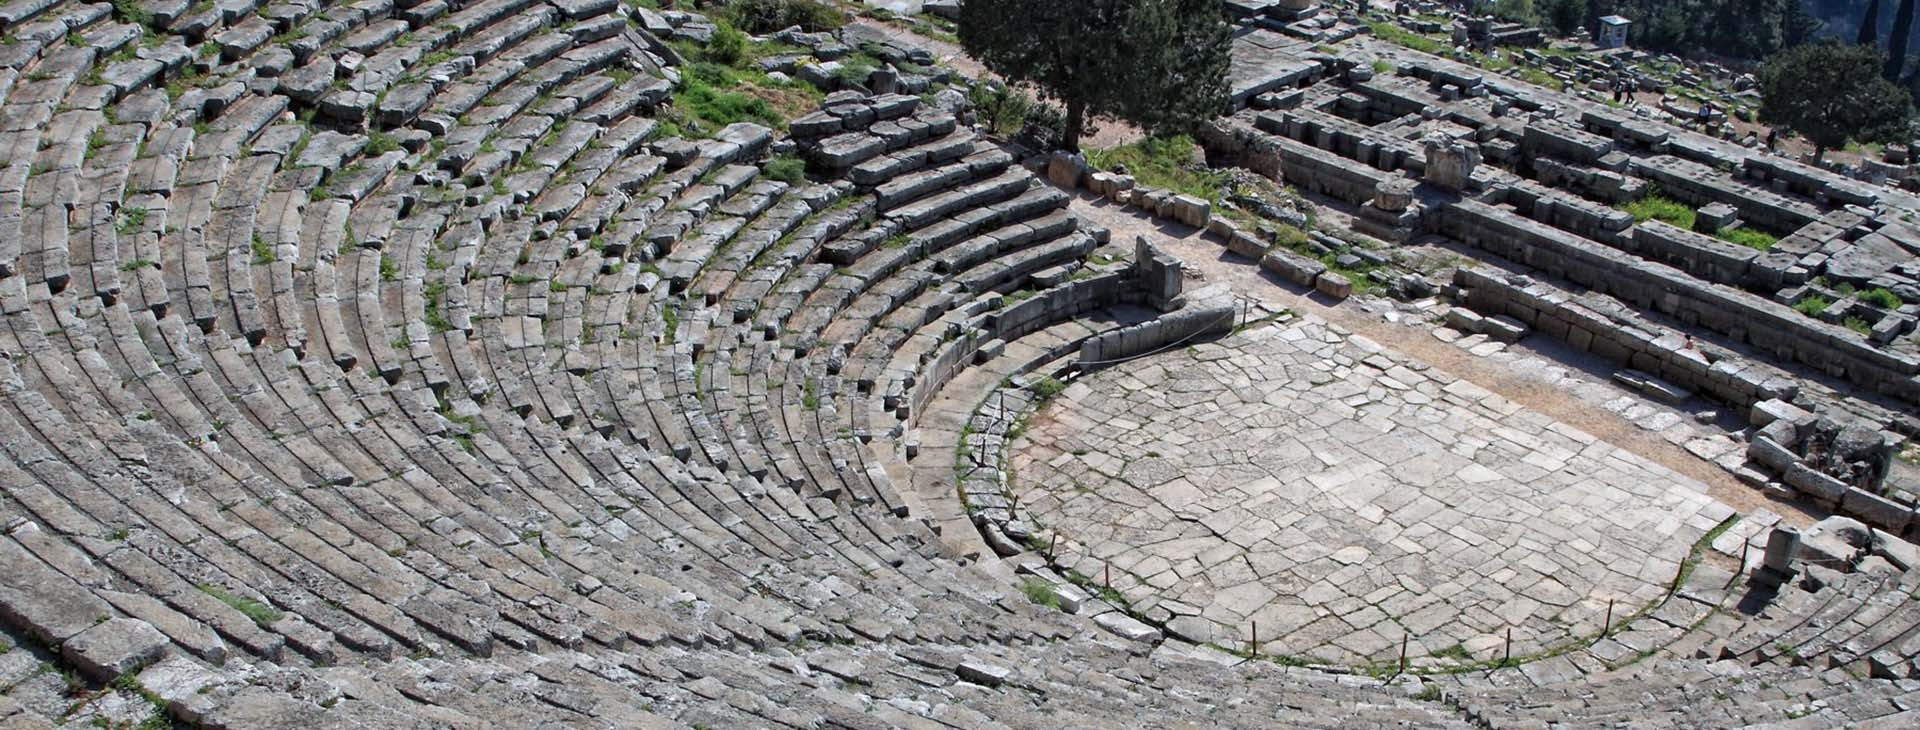 Delphi - Ancient Theatre, Fokis